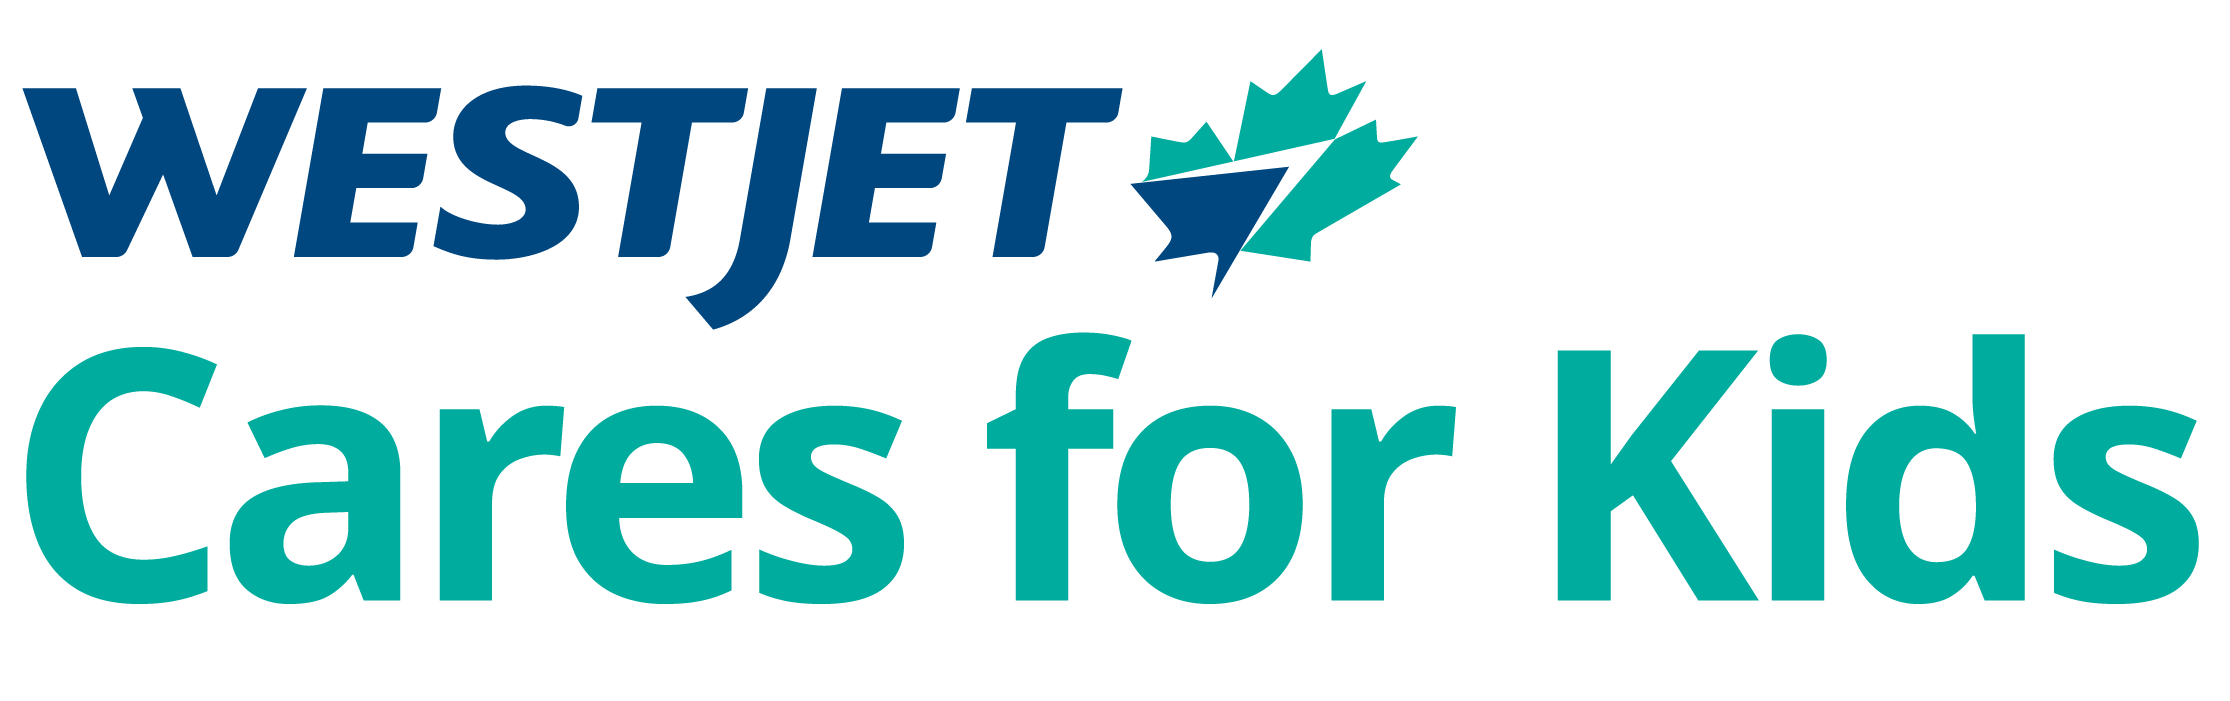 WestJet Cares for Kids logo 2019